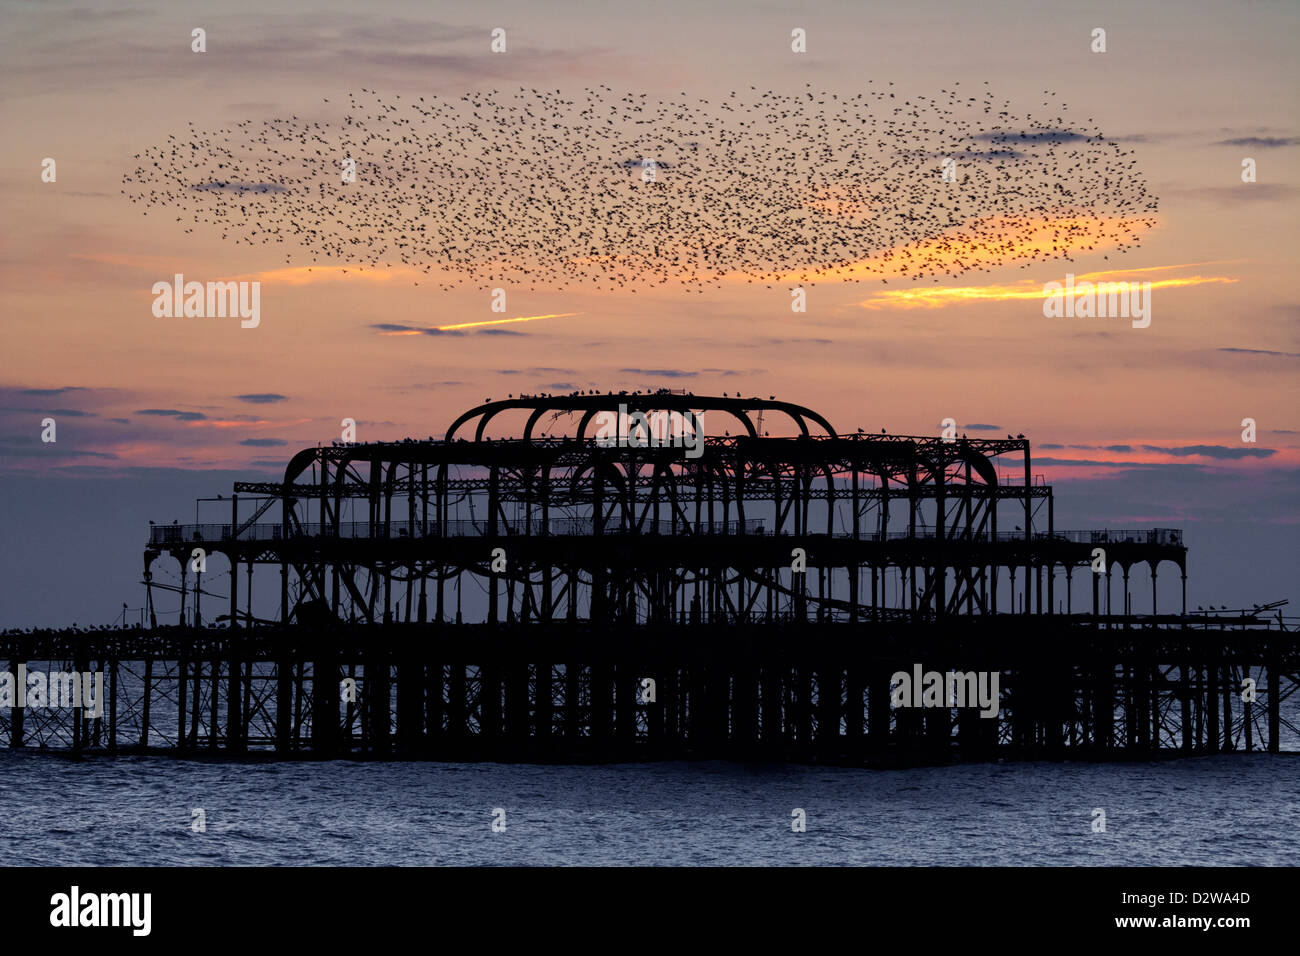 Starlings flying over Brighton's burnt out west pier at sunset in East Sussex, UK. - Stock Image